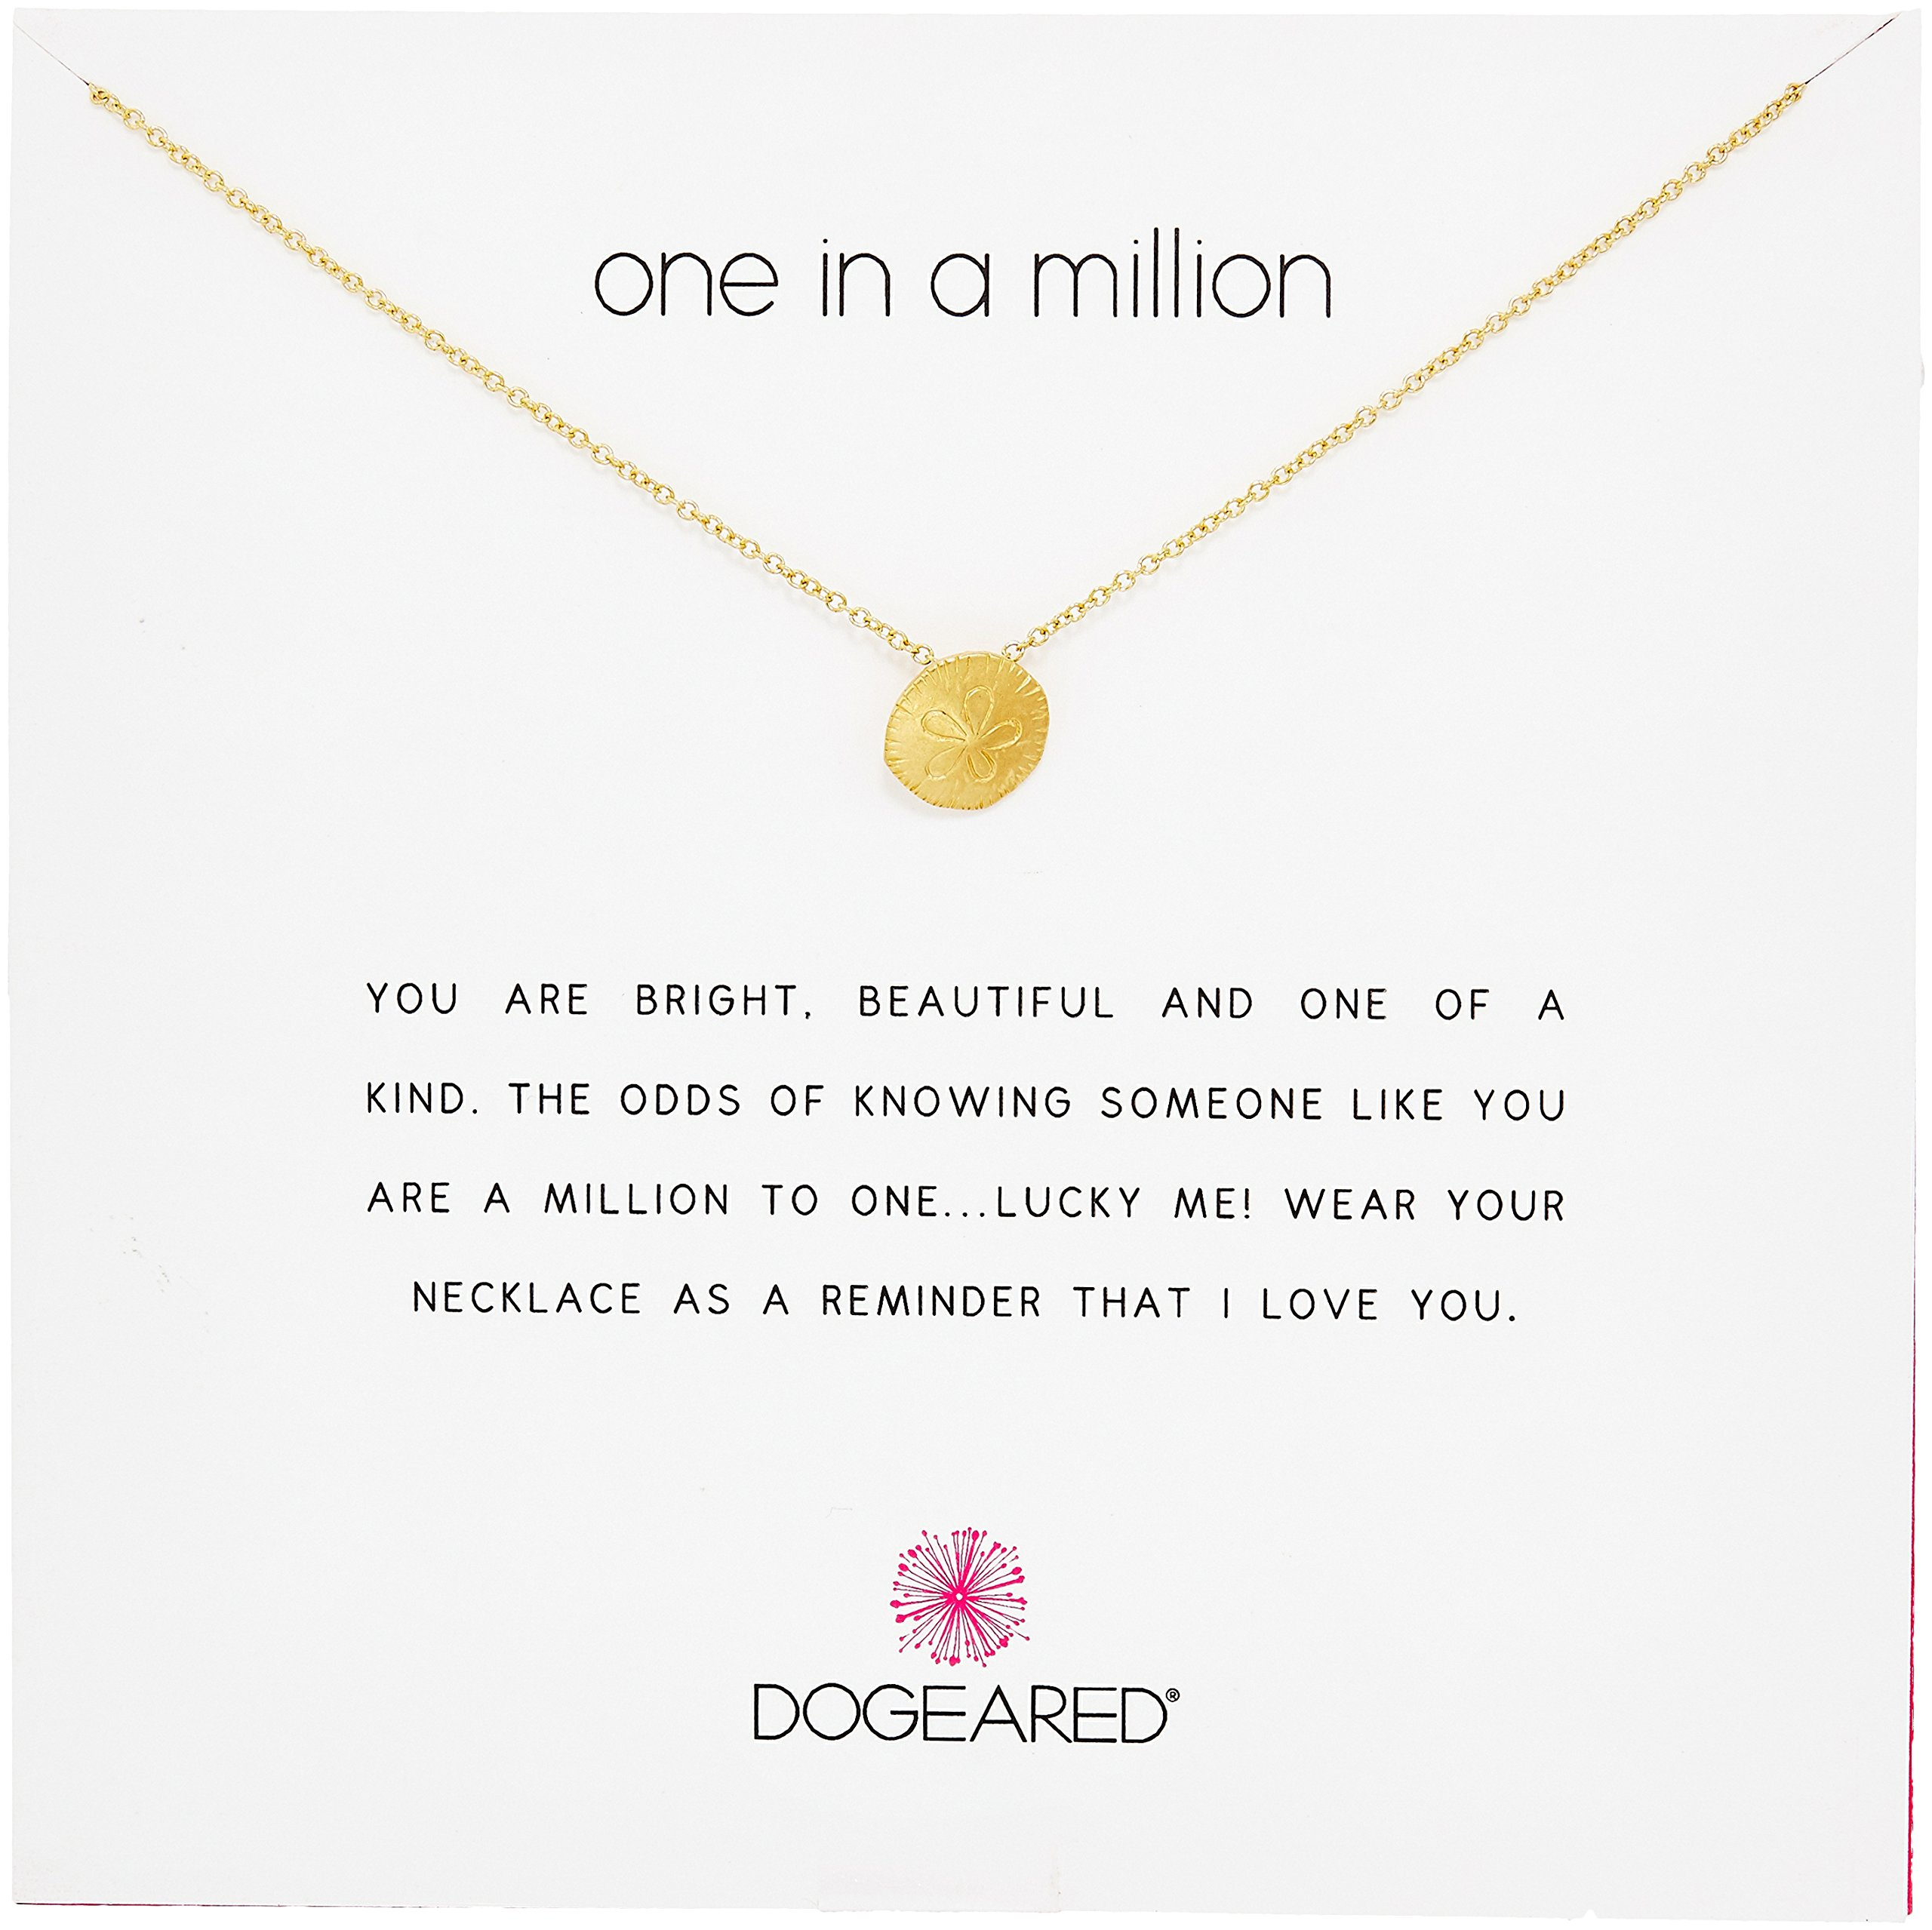 Dogeared Reminders- One in a Million Gold Dipped Sand Dollar Charm Necklace, 16'' +2'' Extender